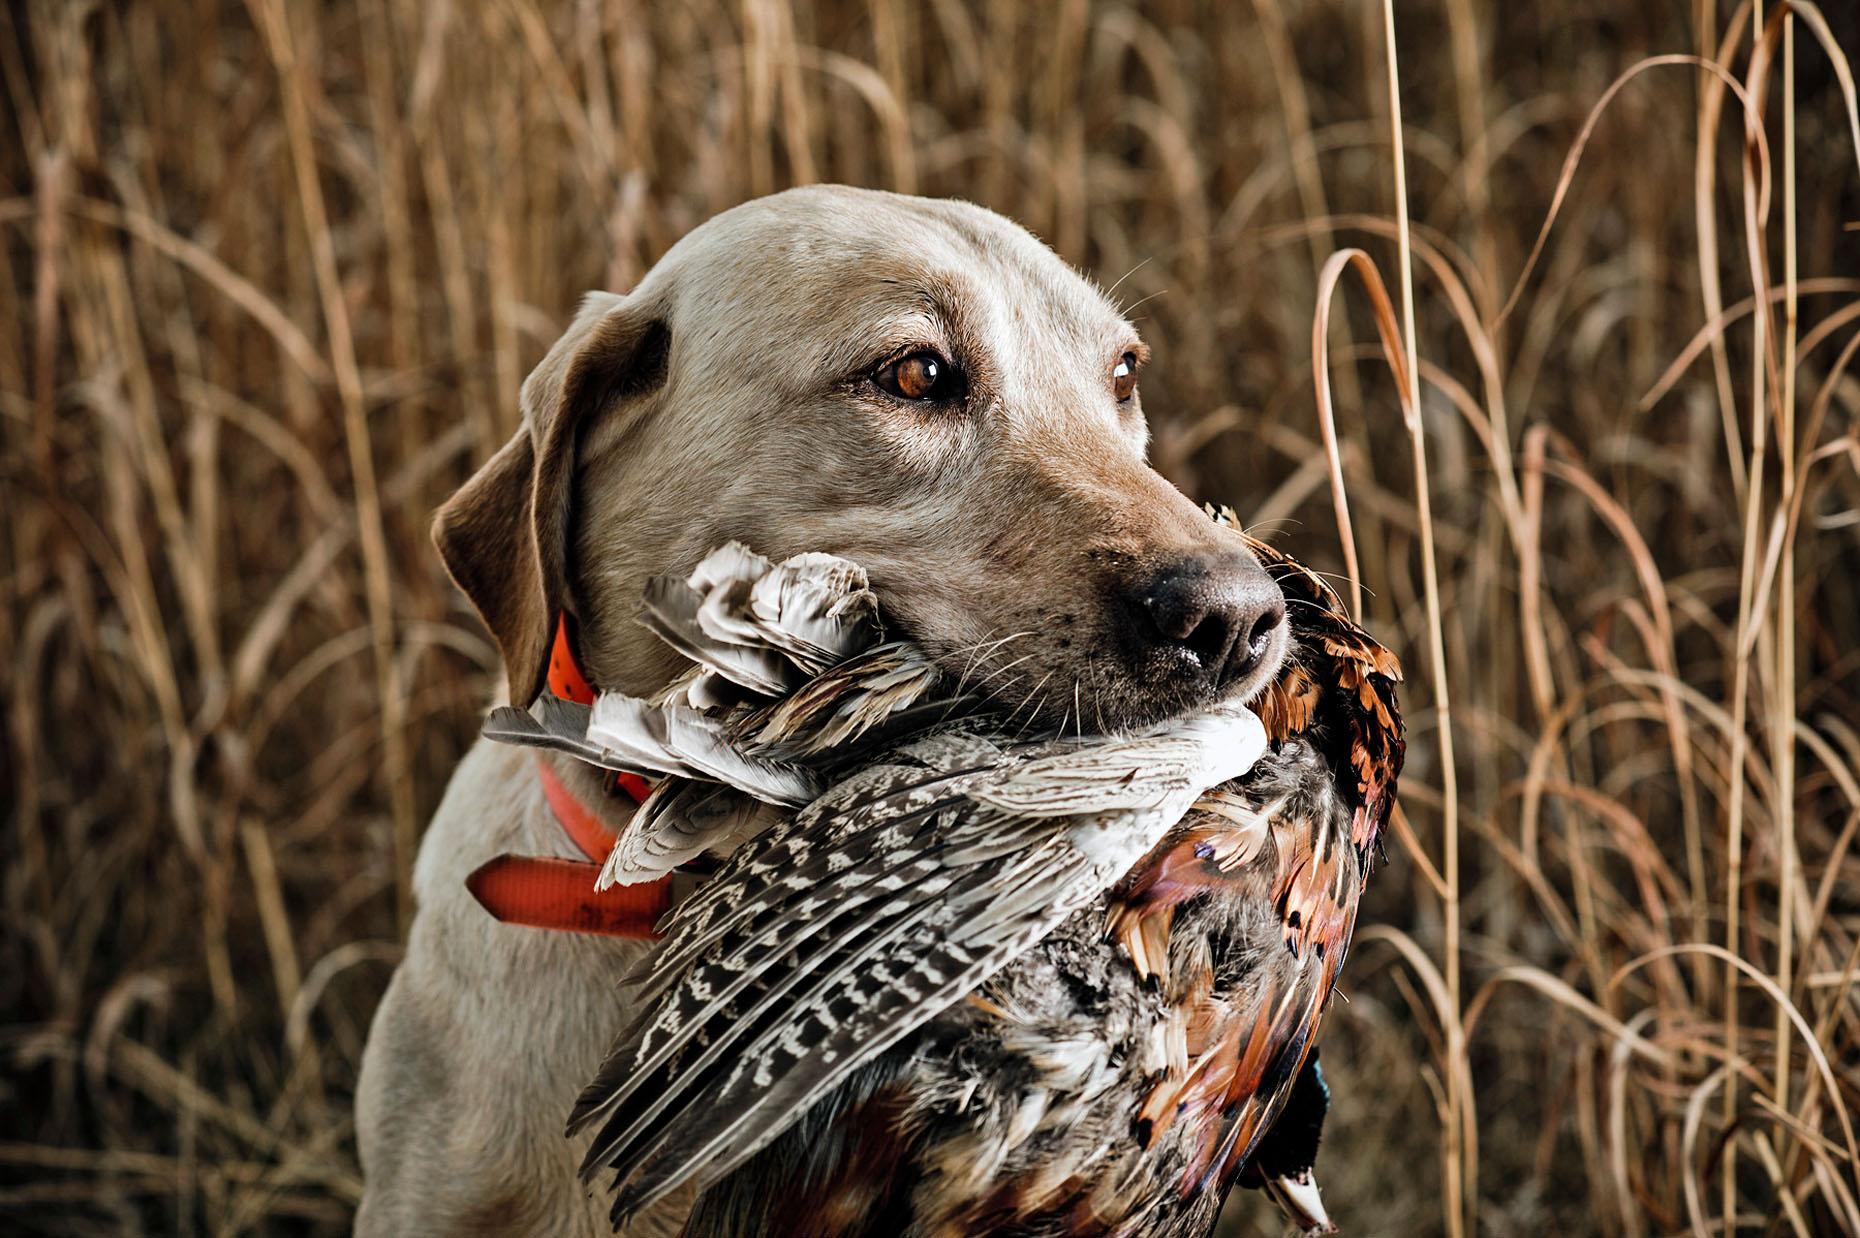 Field & Stream 2013 South Dakota upland bird photo shoot